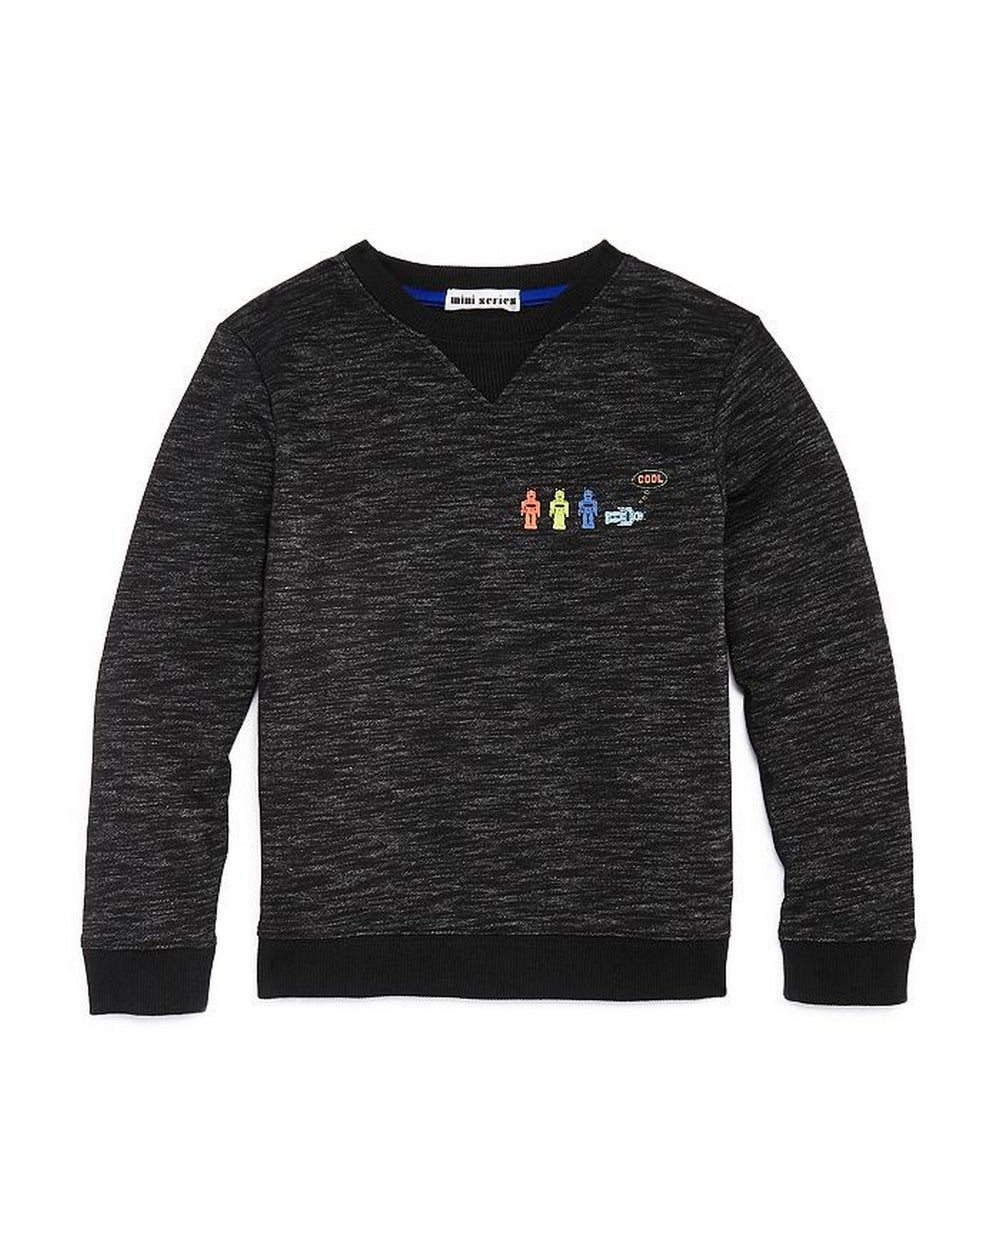 Boys Cool Robot Crewneck - Andy & Evan